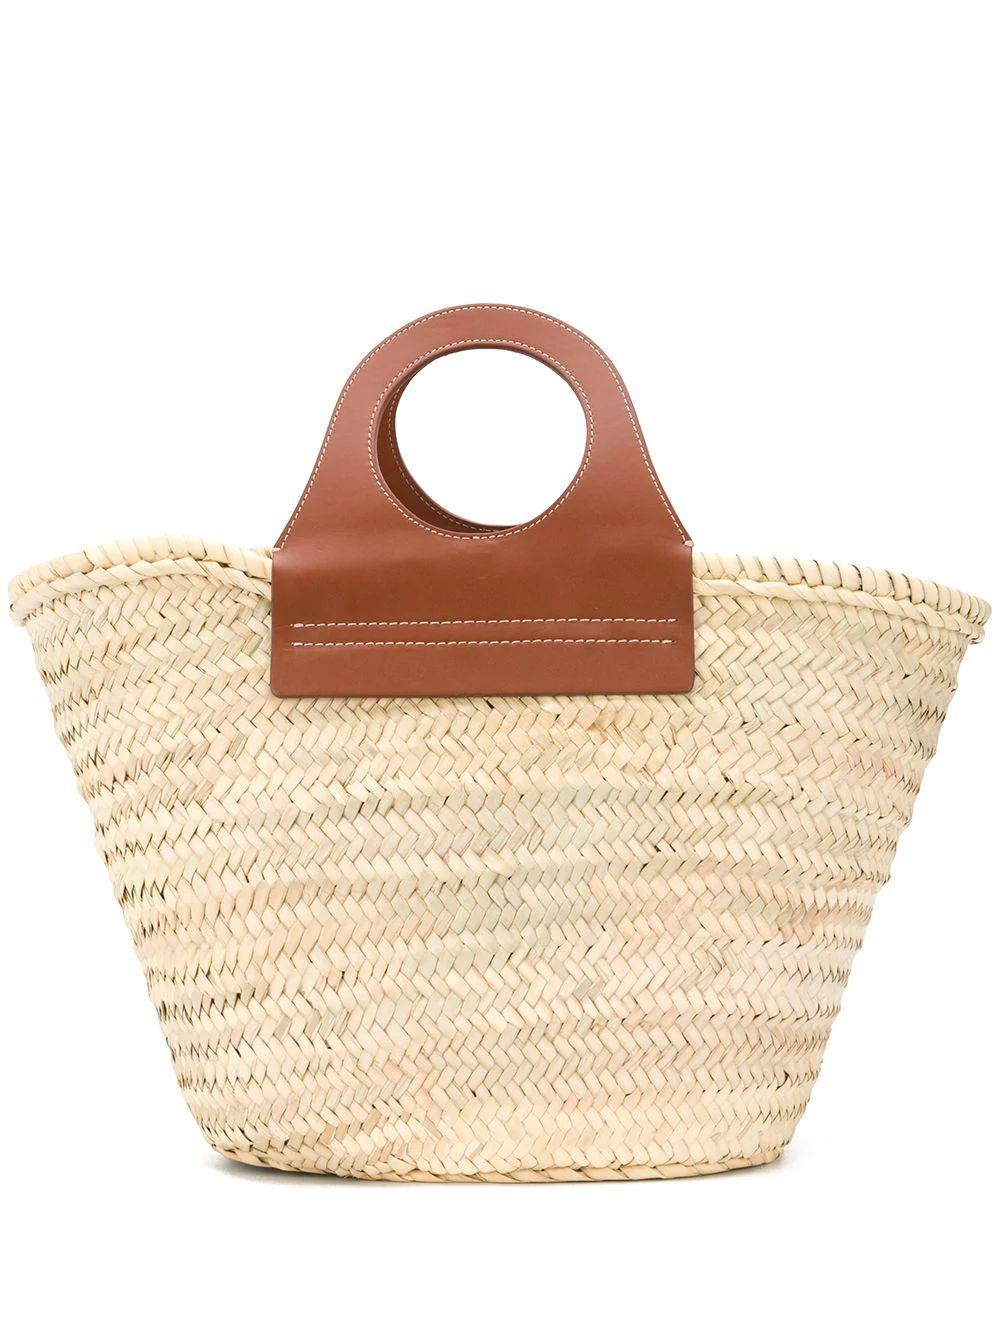 Cabas Straw Tote With Leather